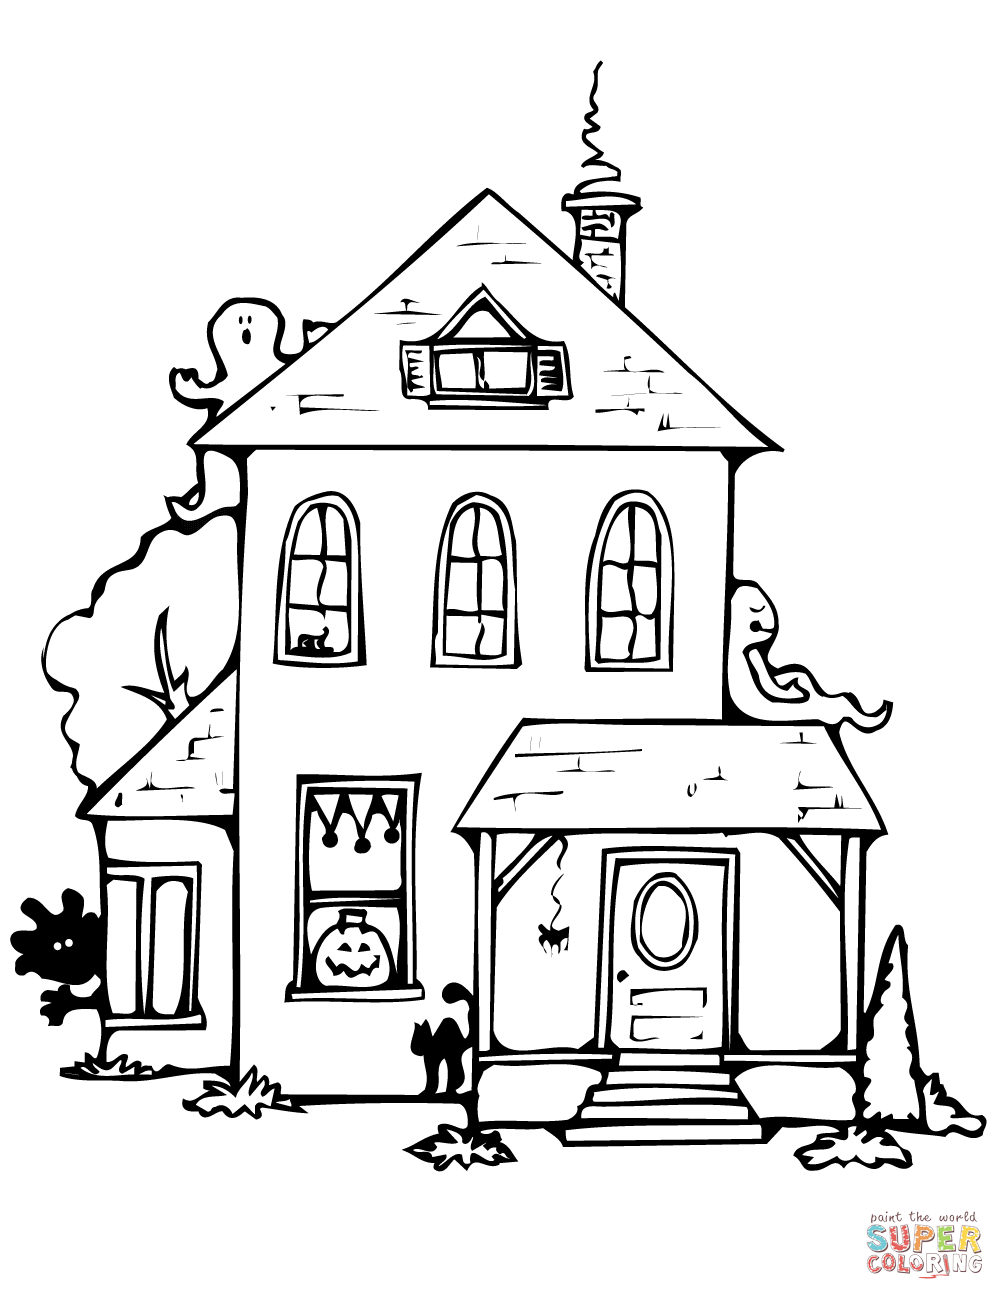 556x652 Haunted House Coloring Pages Printables 1005x1300 Pictures Tags How